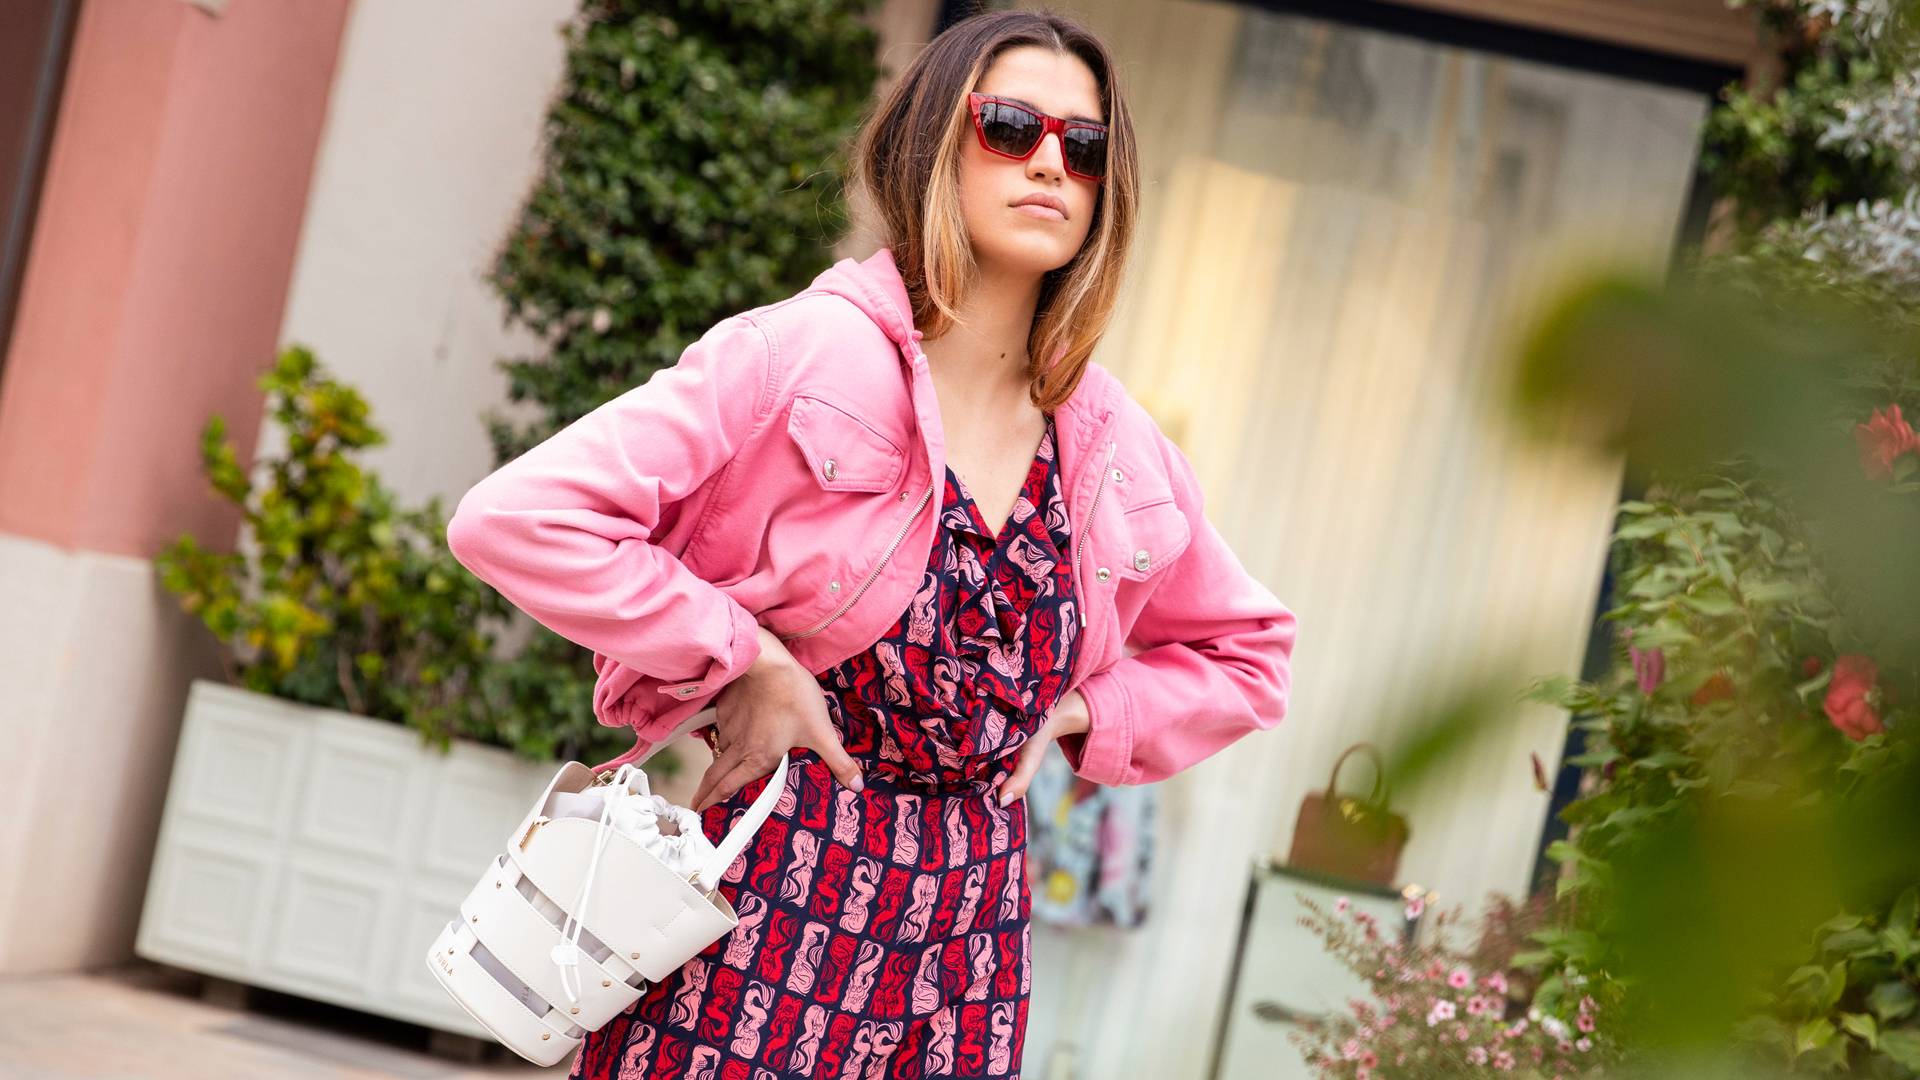 Blonde woman wearing a pink printed jumpsuit and sunglasses